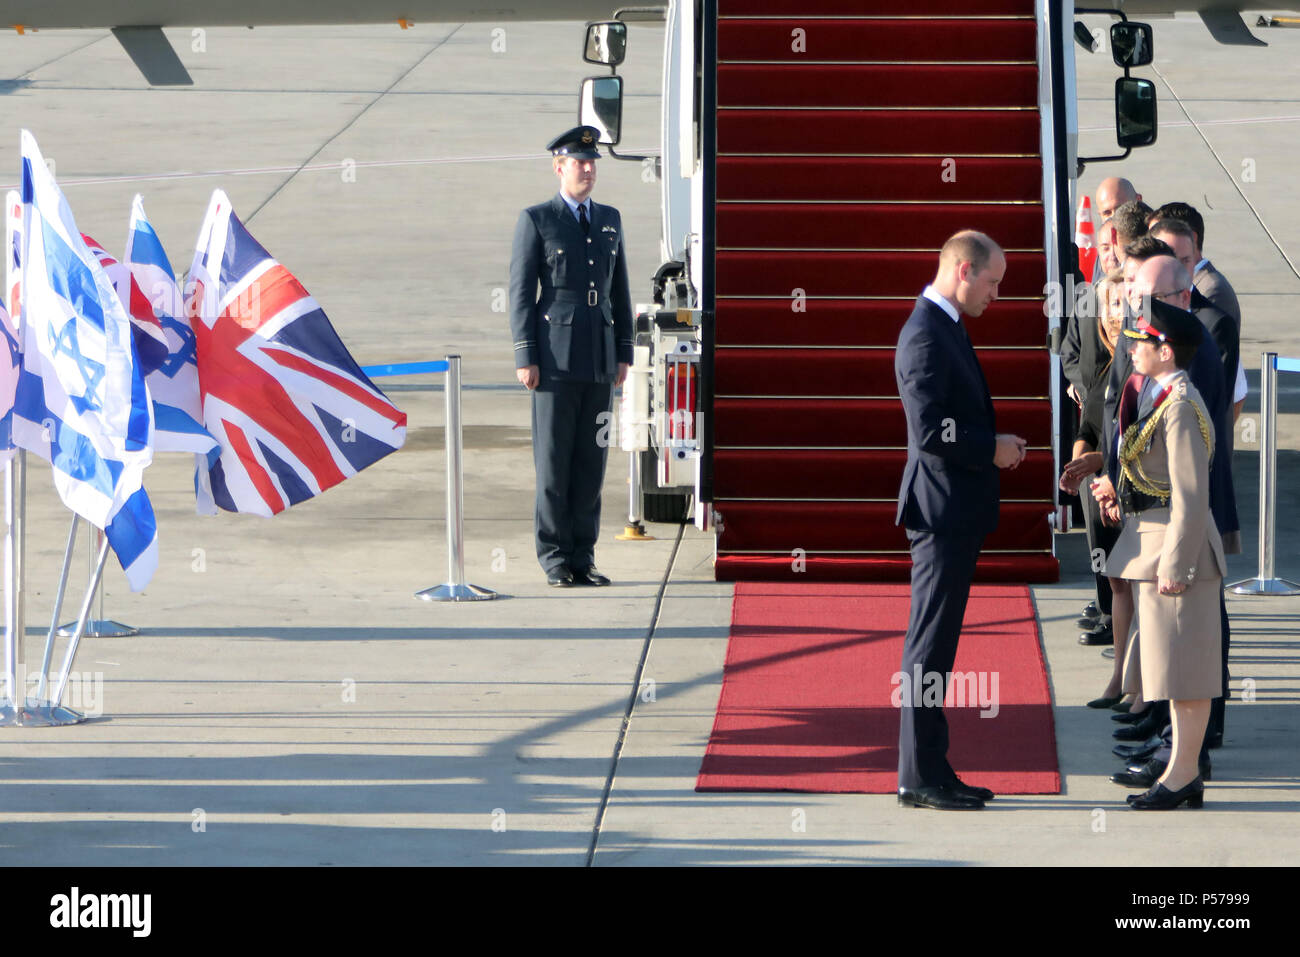 Tel Aviv, Front) arrives at Ben Gurion Airport for a visit to Israel. 25th June, 2018. UK's Prince William (L, Front) arrives at Ben Gurion Airport for a visit to Israel, on June 25, 2018. Credit: JINI/Gideon Markowicz/Xinhua/Alamy Live News - Stock Image